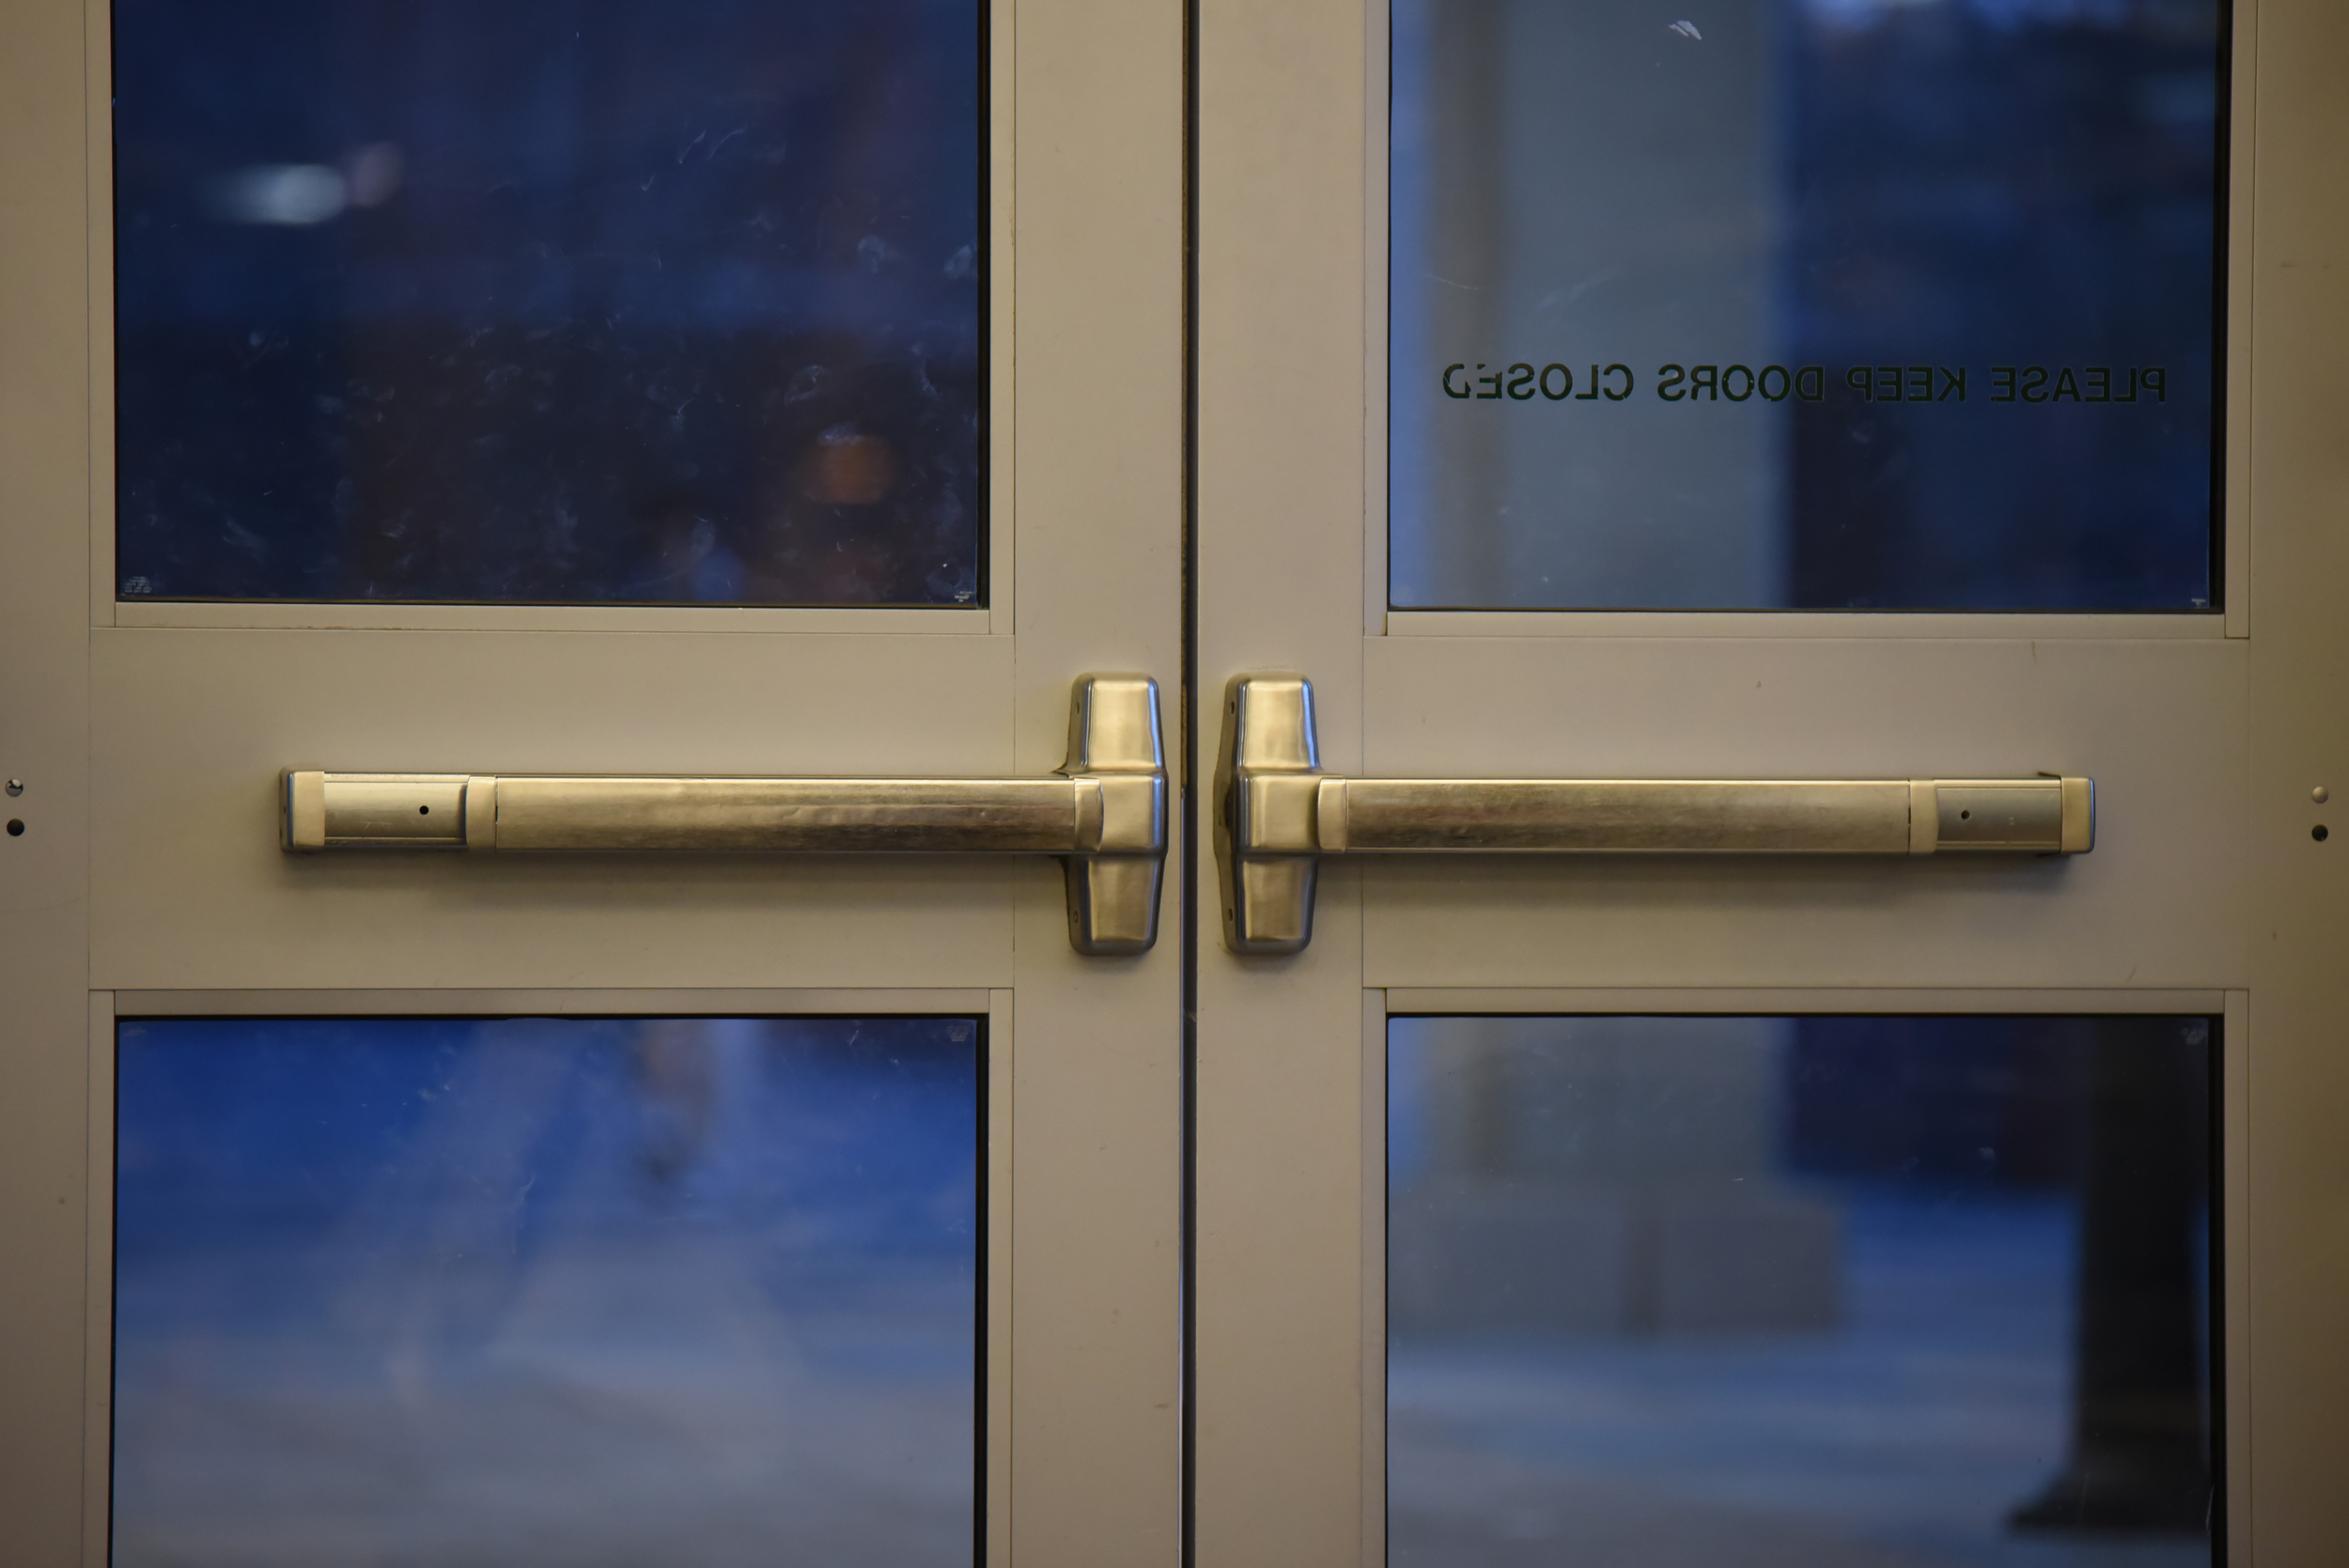 UConn's Division of Public Safety is installing locks on classroom doors that lock from the inside and working towards opening a security operation center.(Zhelun Lang/Daily Campus)